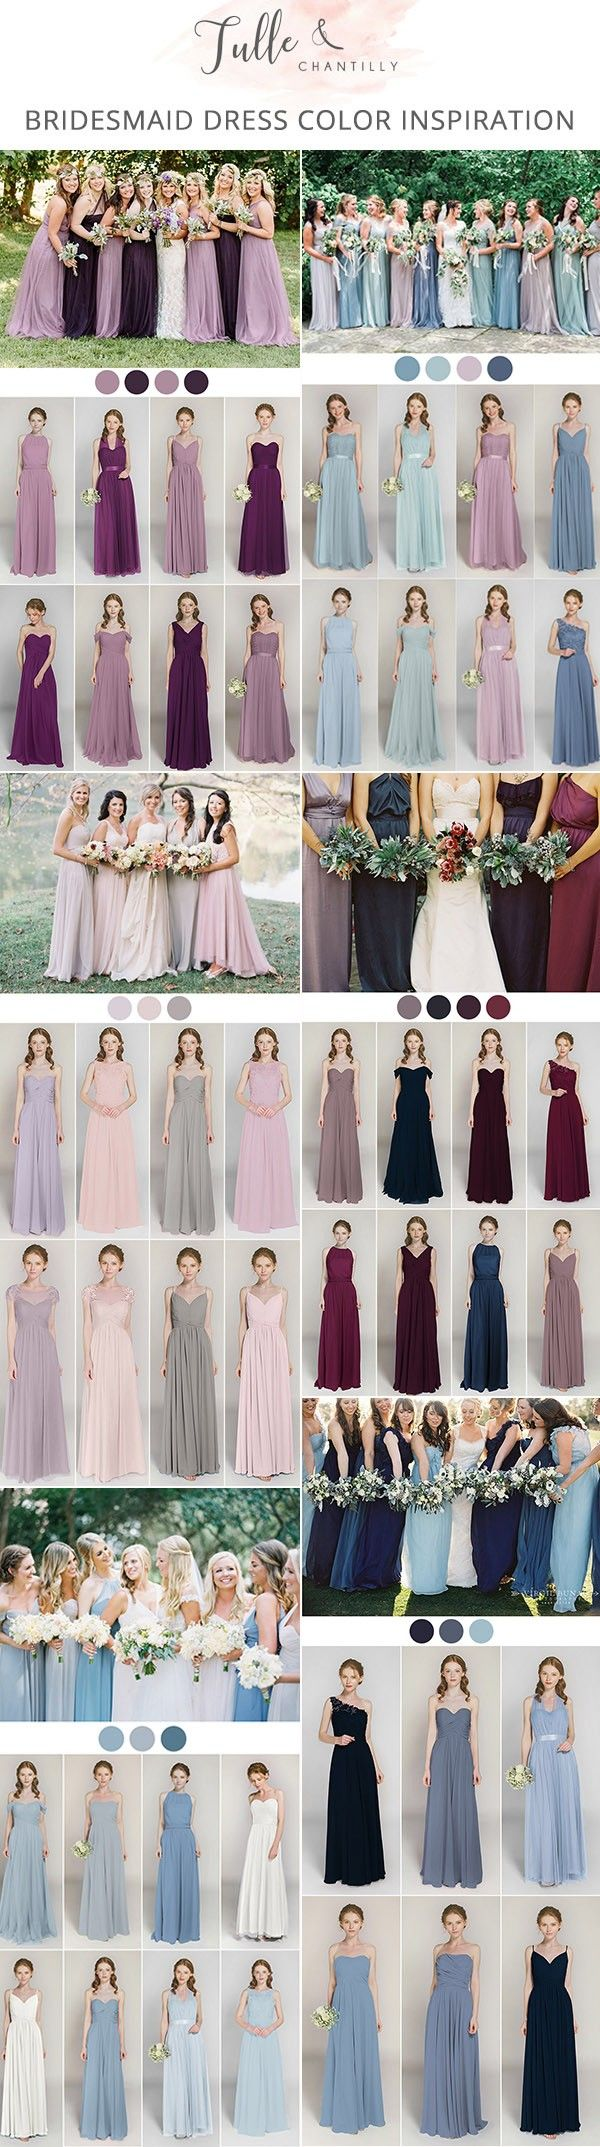 Best 25+ Designer bridesmaid dresses ideas on Pinterest | Navy ...